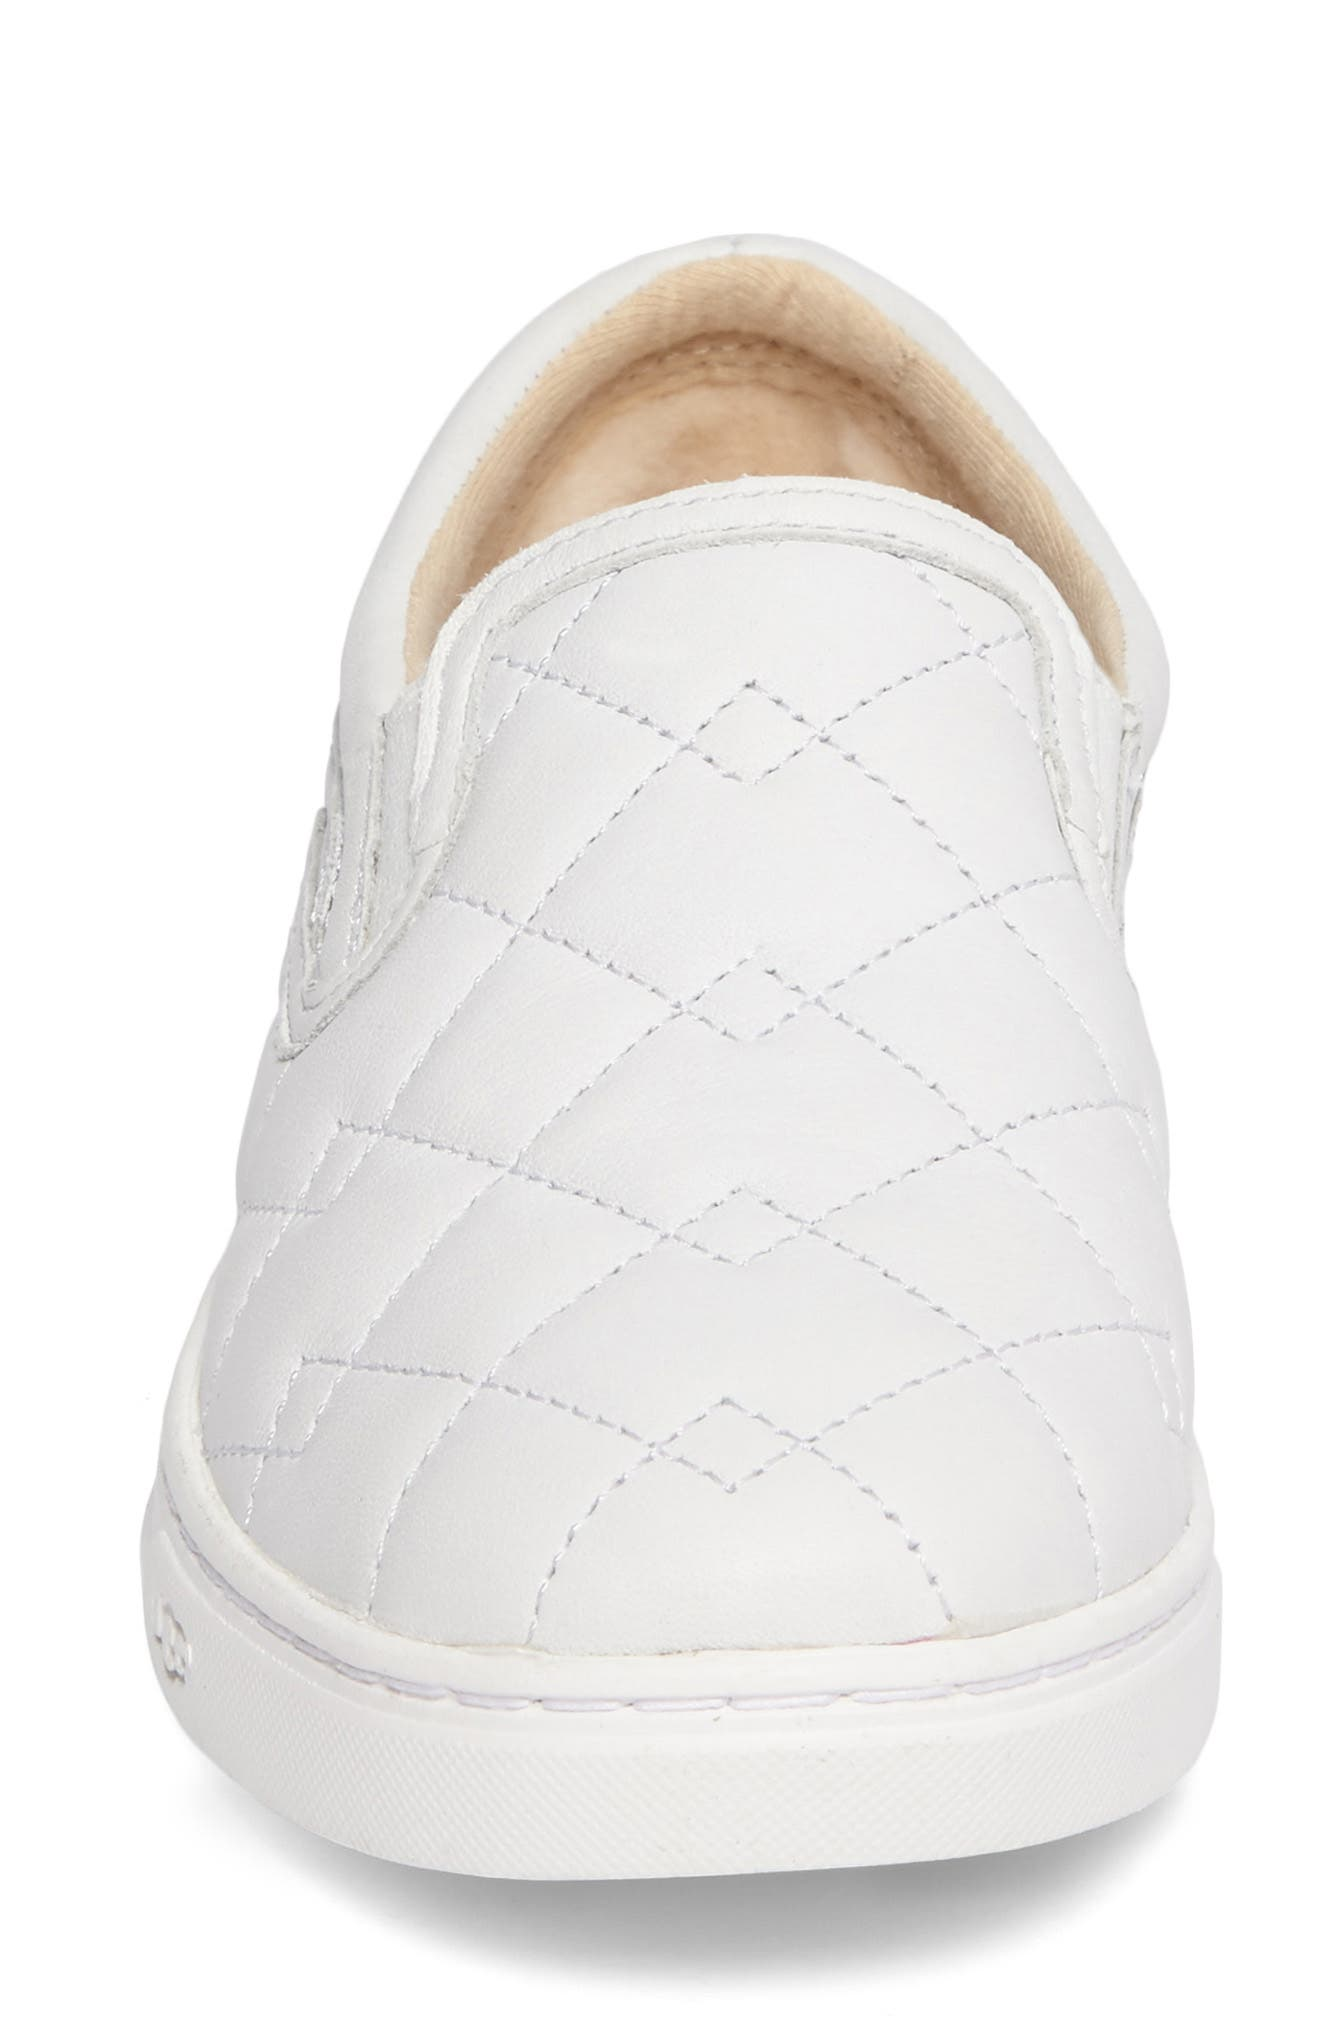 Fierce Deco Quilted Slip-On Sneaker,                             Alternate thumbnail 4, color,                             100